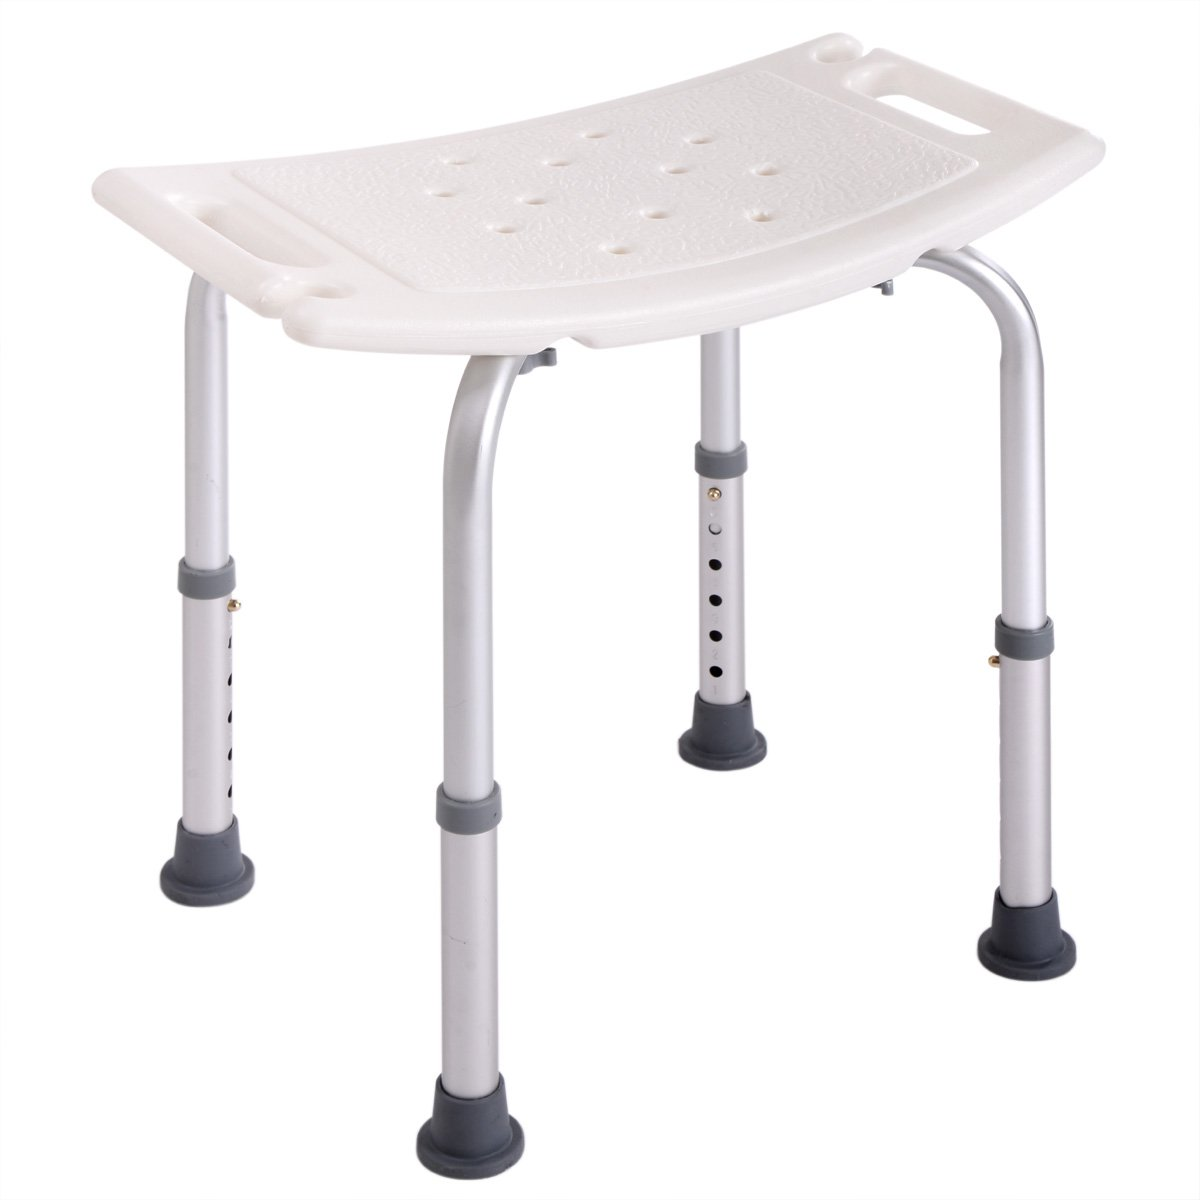 Tobbi Medical Tool-Free Assembly Adjustable Shower Stool Tub Chair W/Anti-Slip Rubber Tips